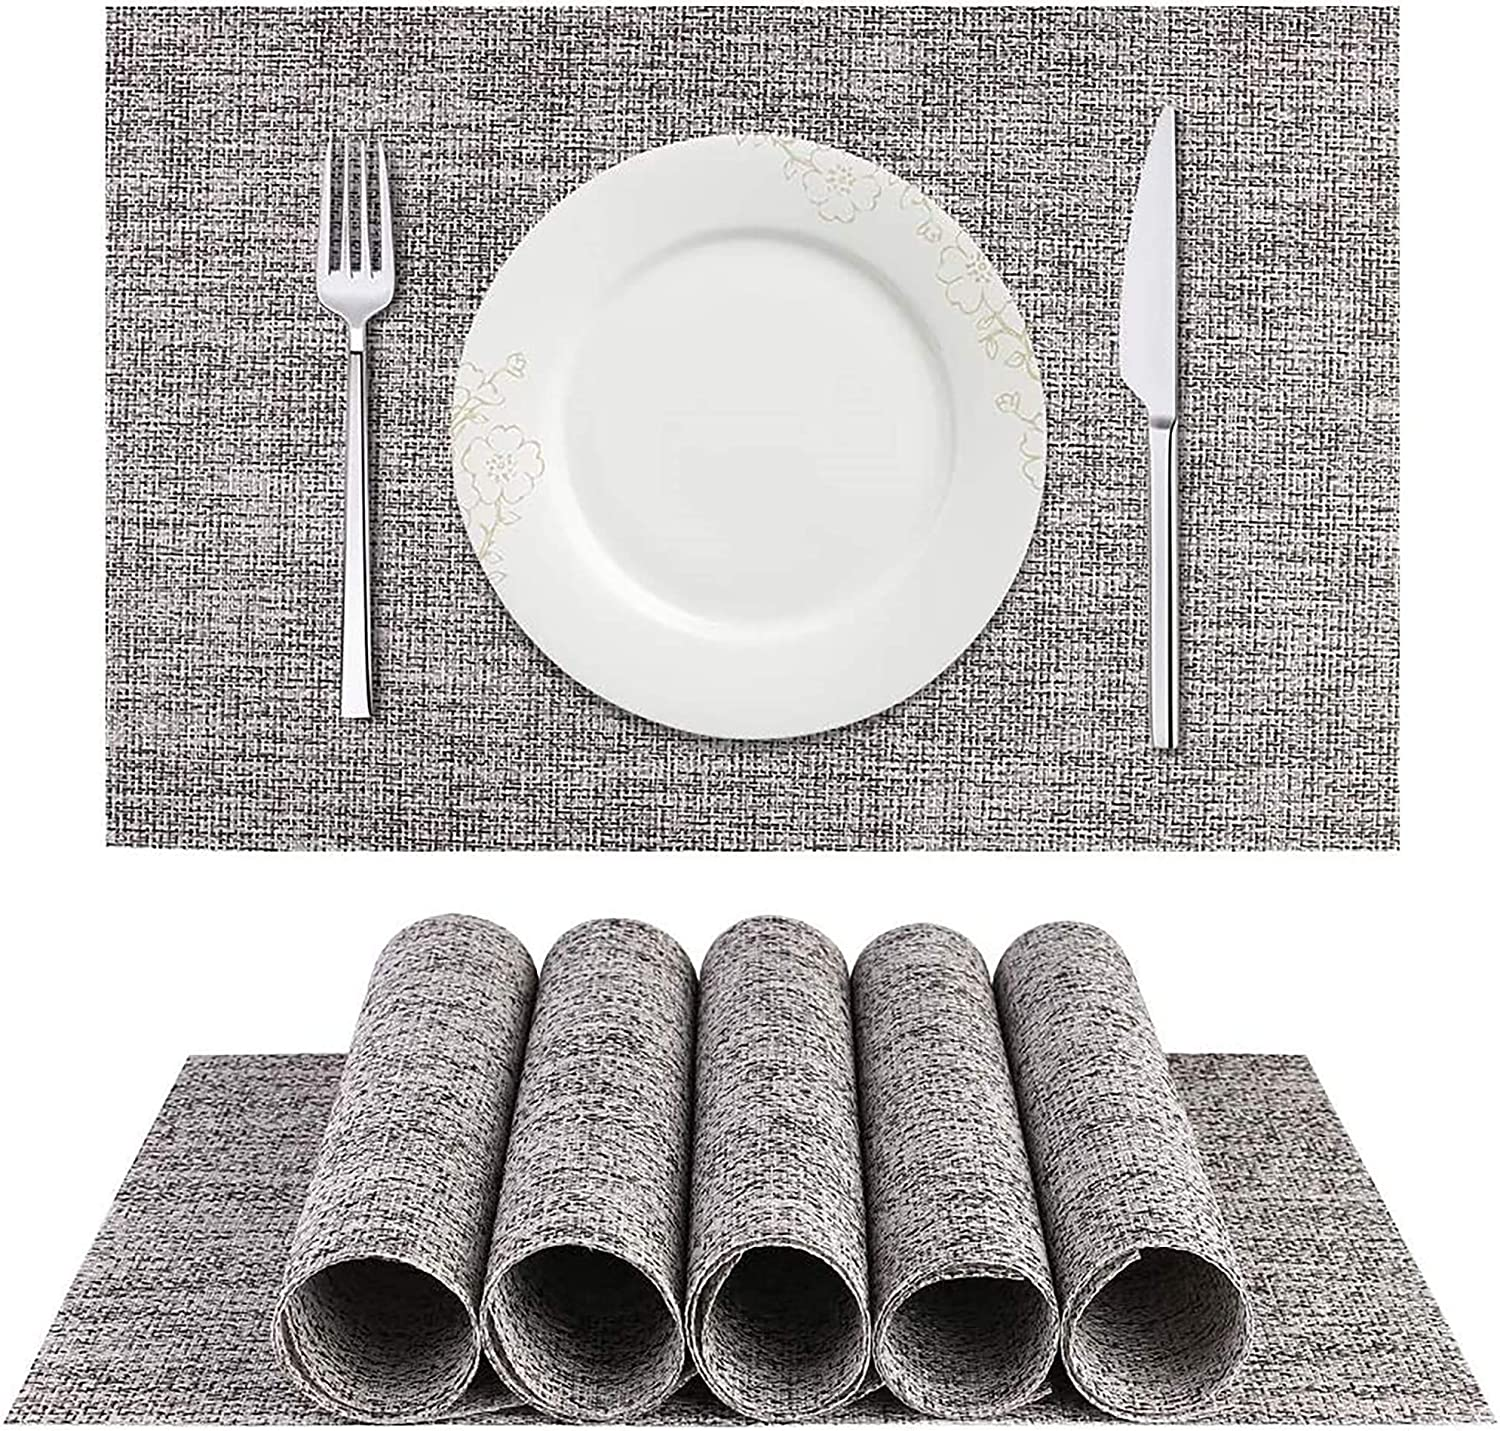 MVYECOR Placemats, Durable Stain Resistant mats for Kitchen Table Non-Slip Washable PVC Table Mats Woven Vinyl Placemats Set of 6(Smoky Grey )